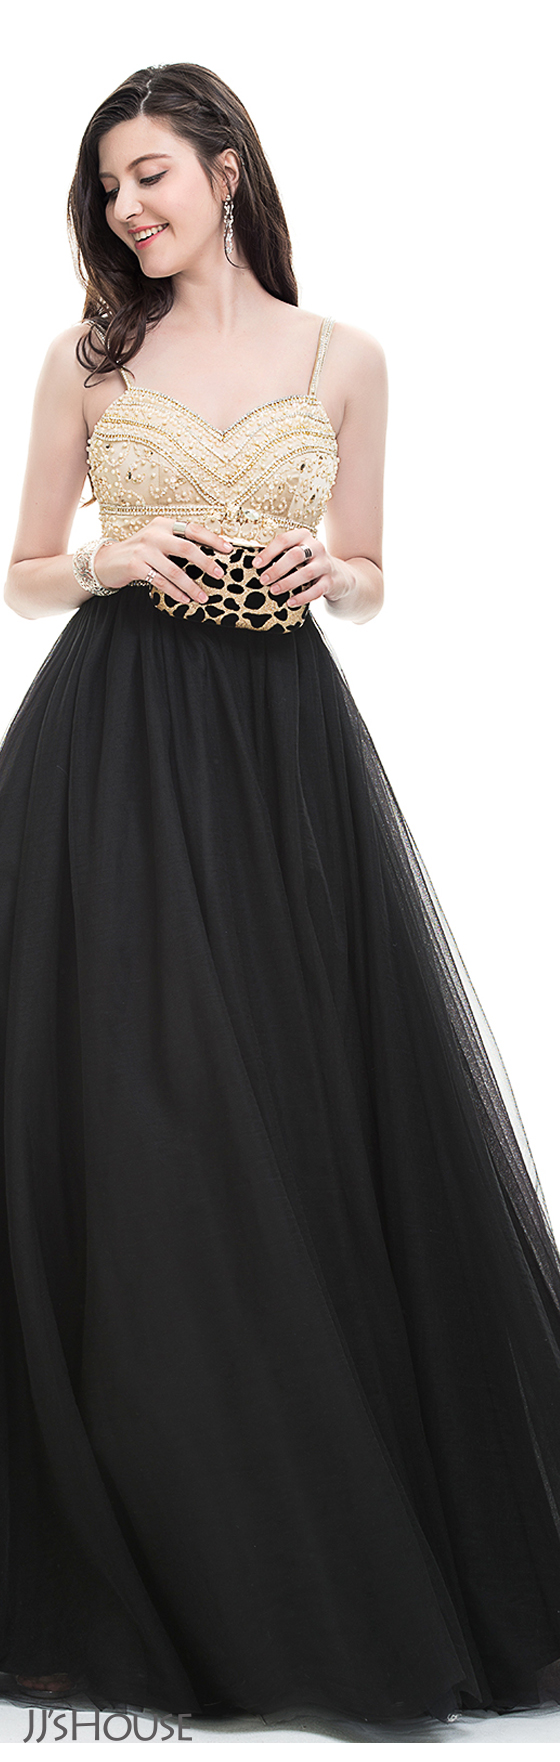 Ballgown sweetheart floorlength tulle prom dress with beading